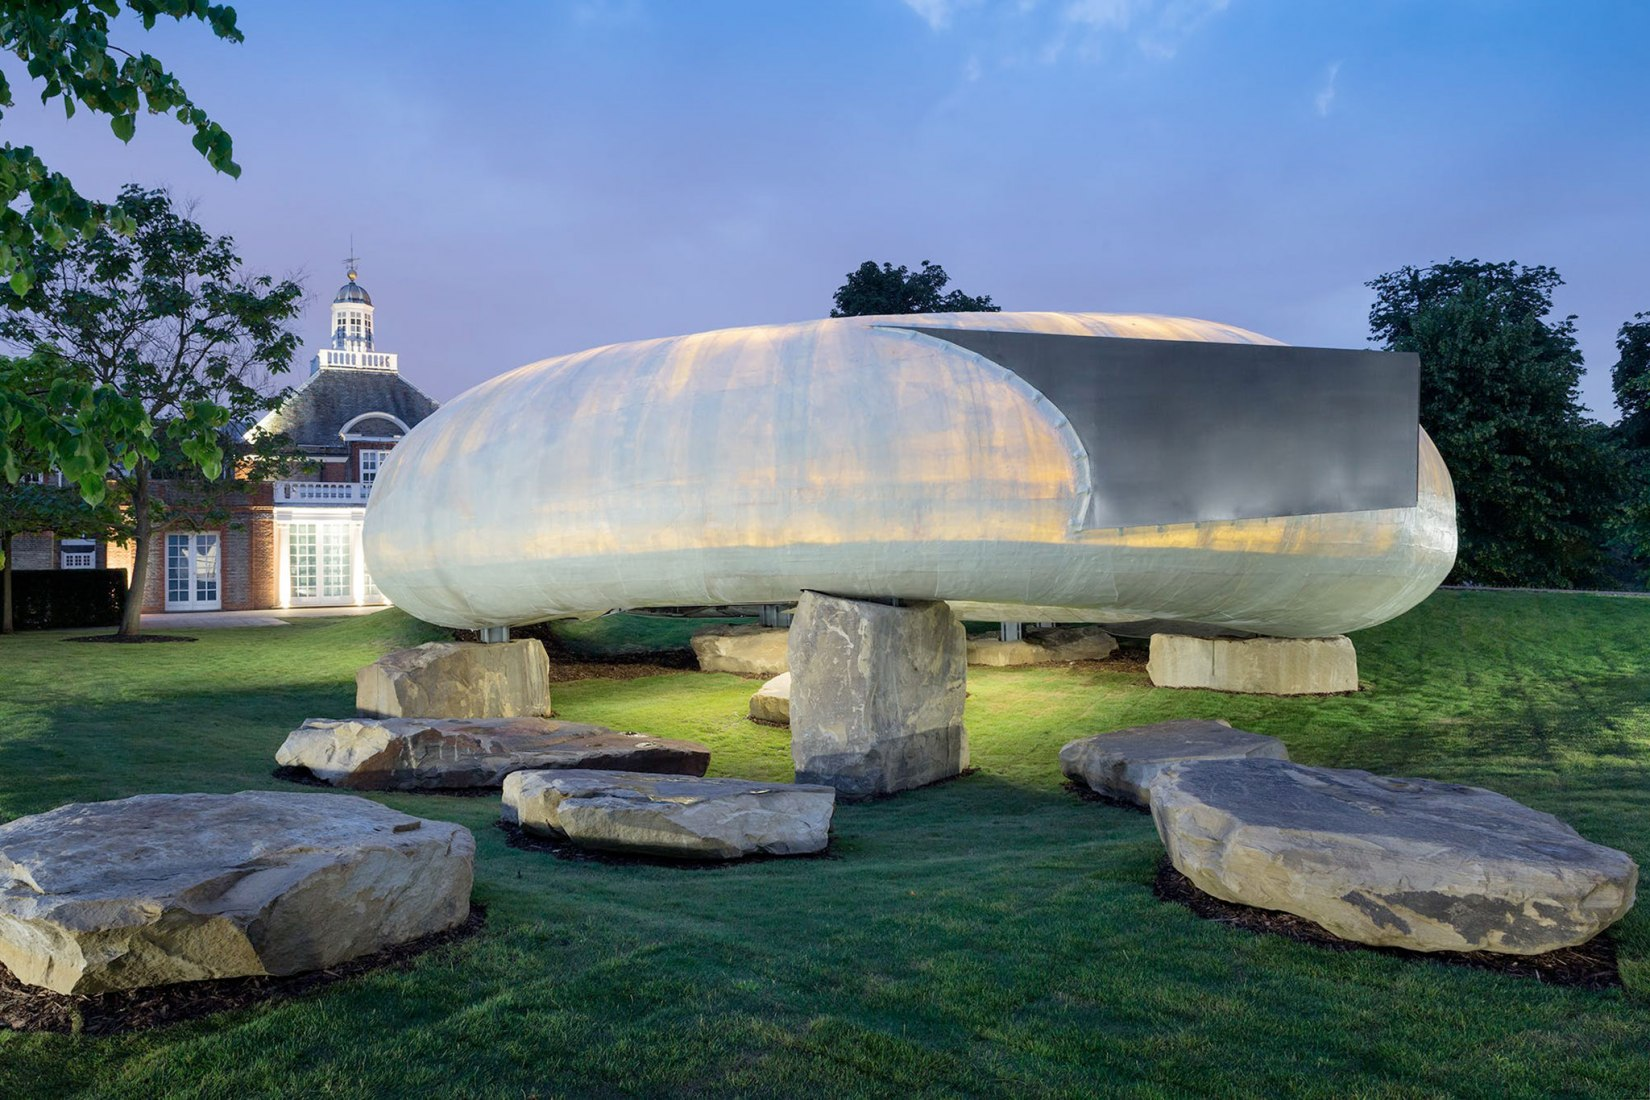 Serpentine Gallery Pavilion 2014. Designed by Smiljan Radić. Photograph © 2014 Iwan Baan.